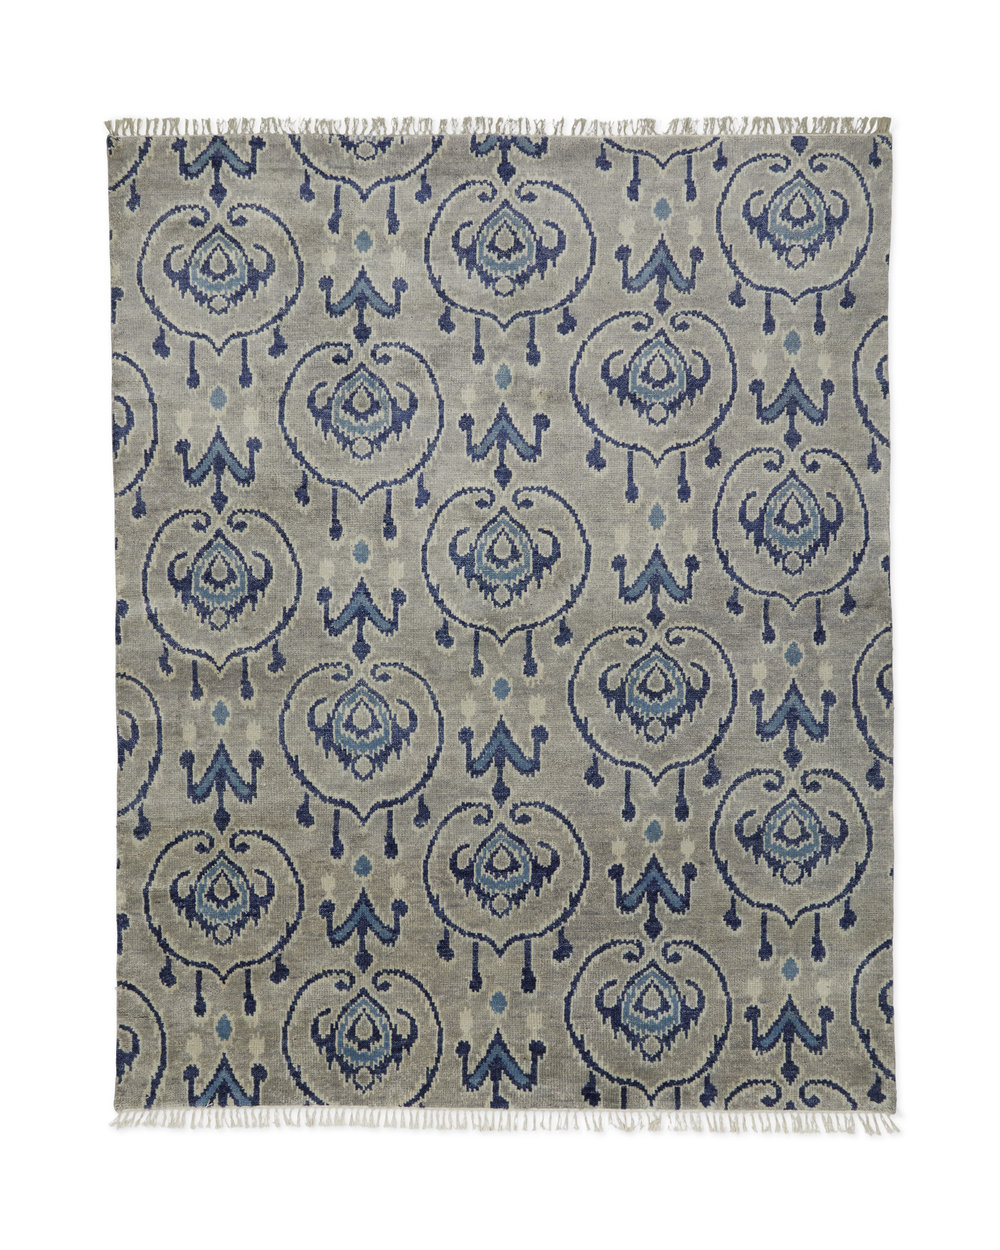 Rug_Channing_Hand_Knotted_8x10_Blue_MV_0023_Crop_SH.jpg